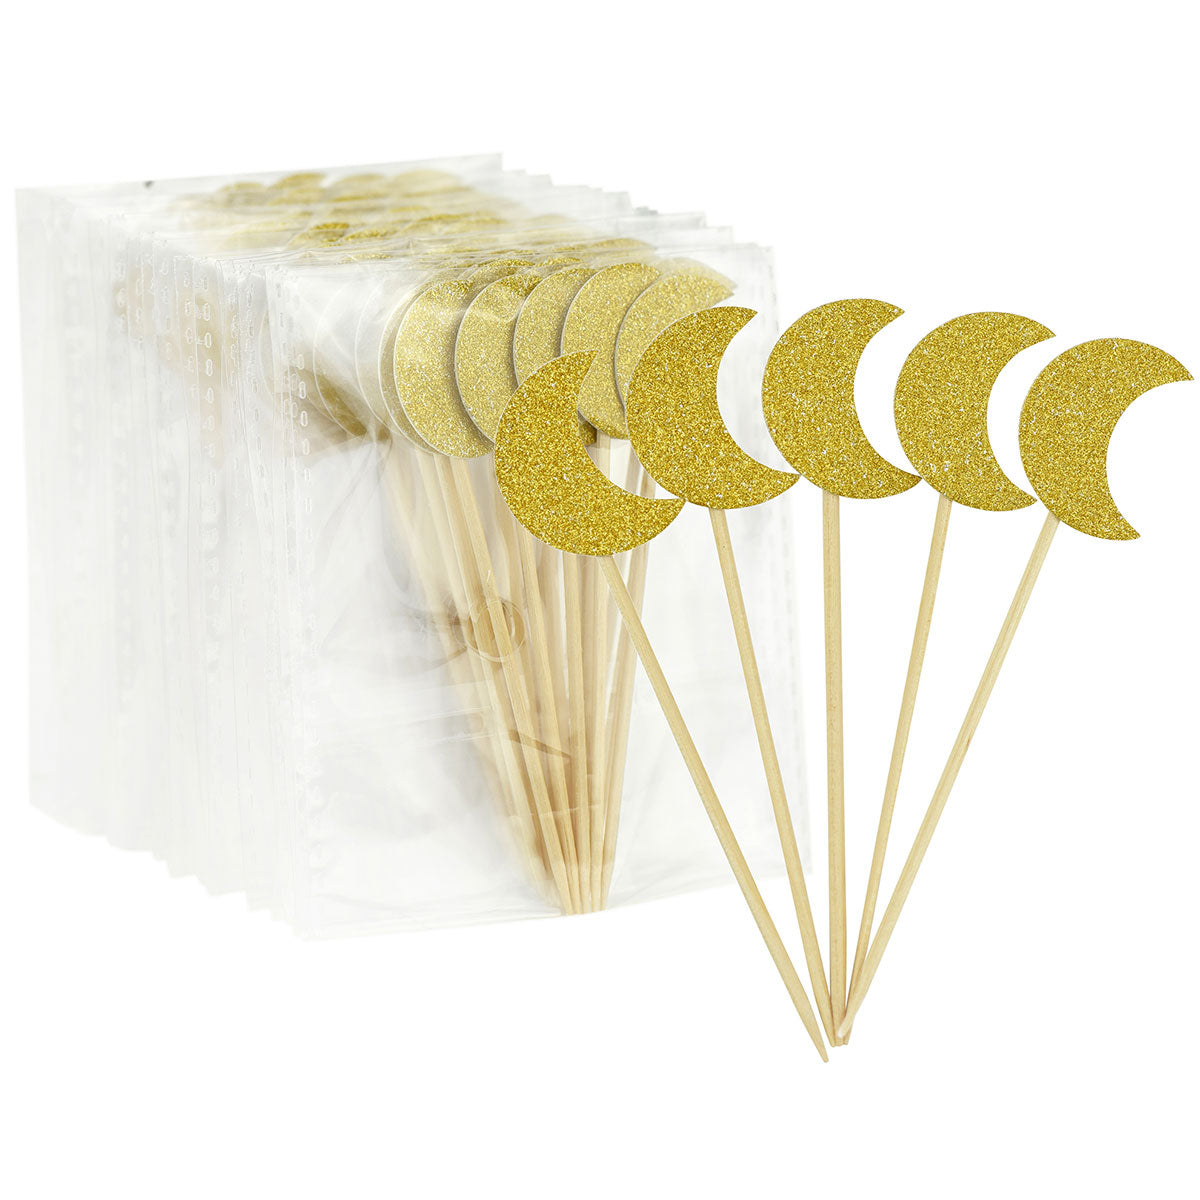 Gold Glitter Moon Cake Toppers 50 Pcs